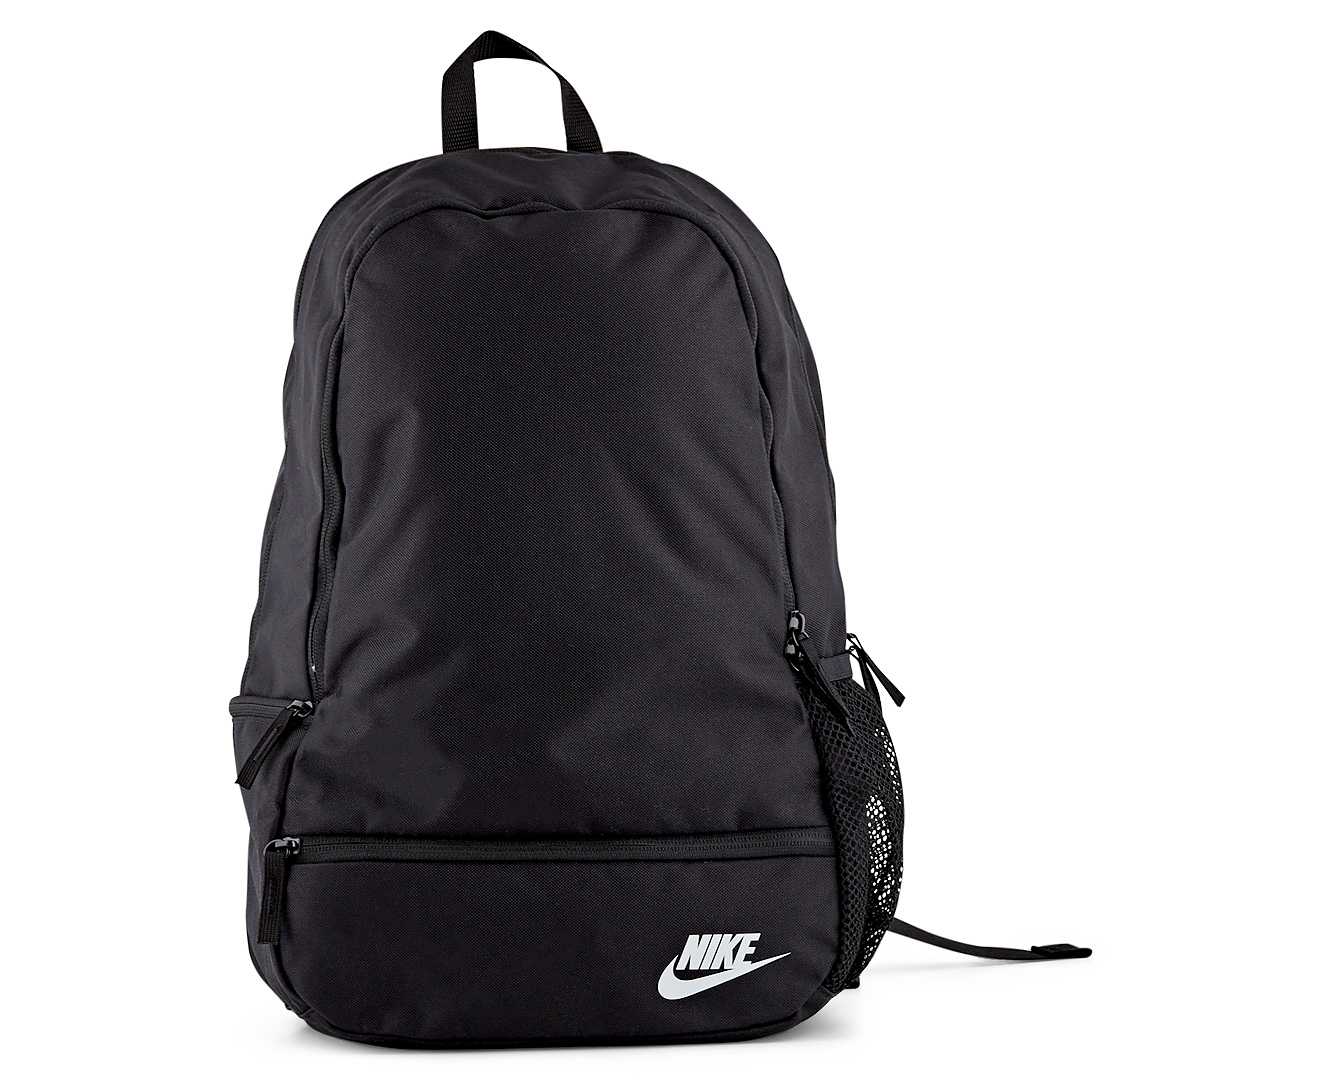 8ebad7dae Nike Classic 22L North Solid Backpack - Black | Catch.com.au